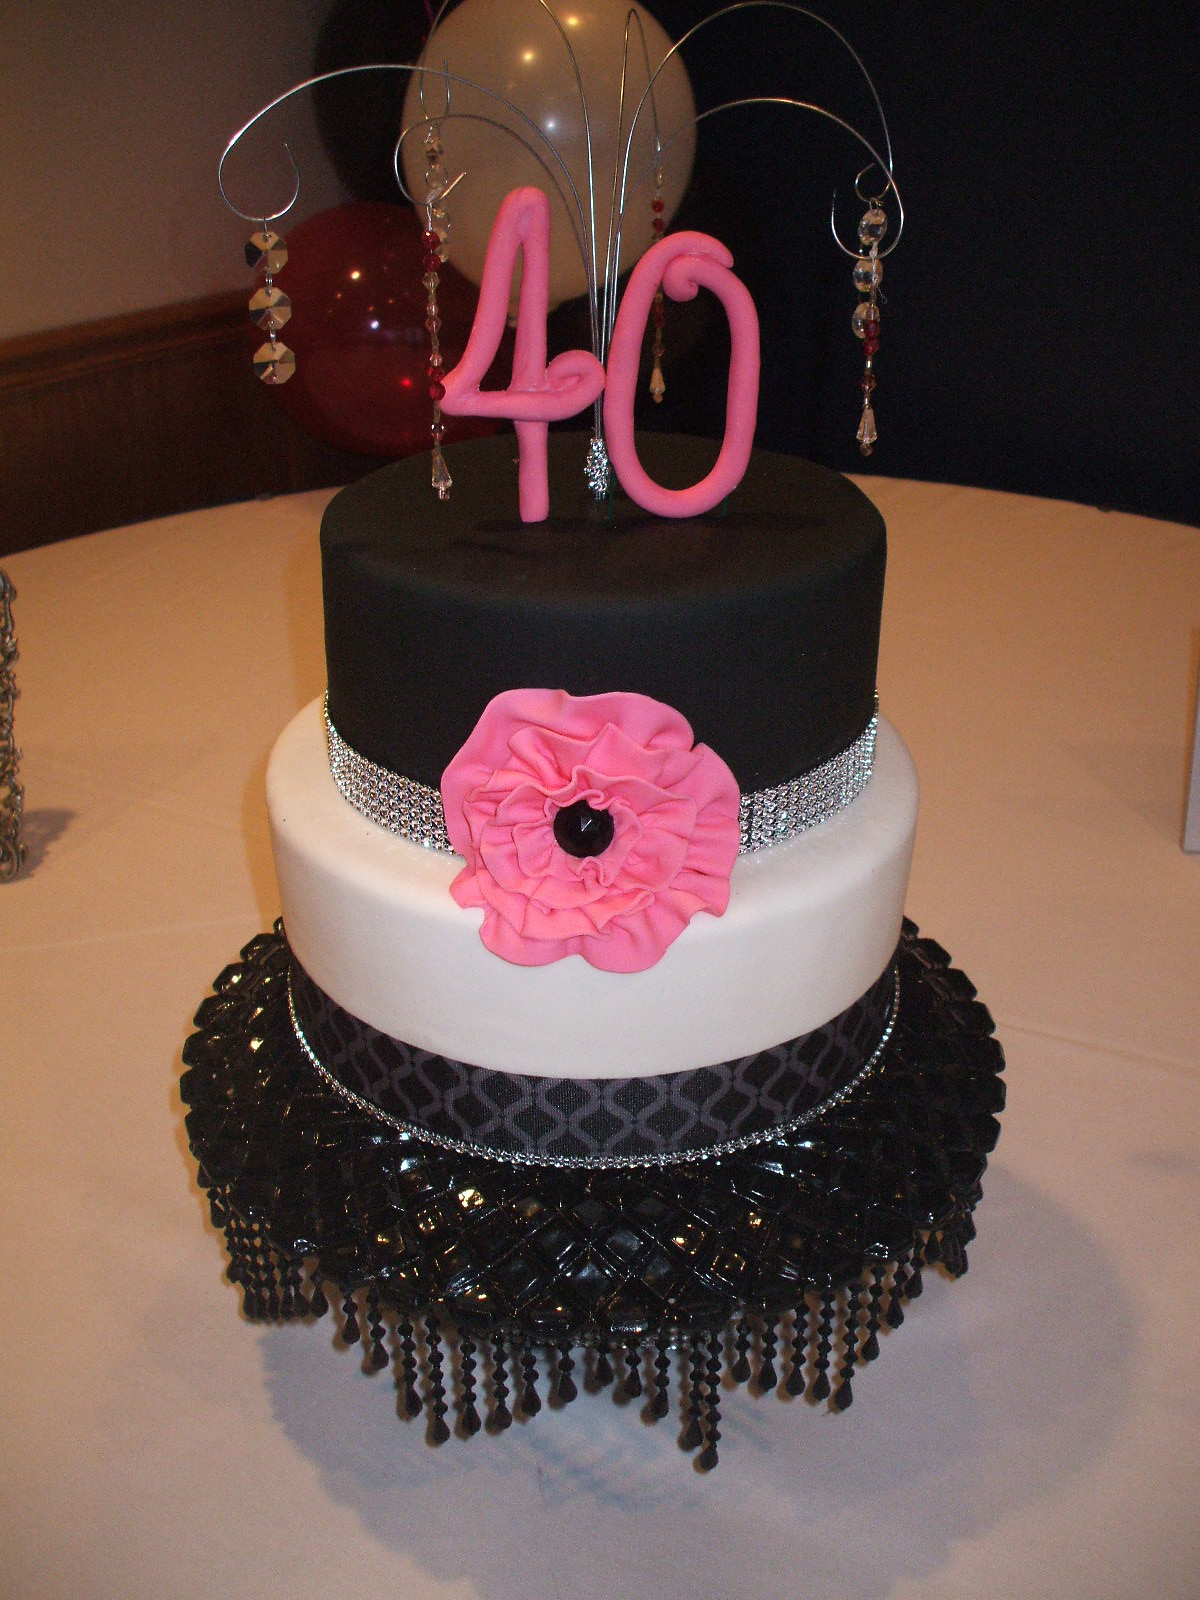 That s a Cake Hot Pink and Black 40th